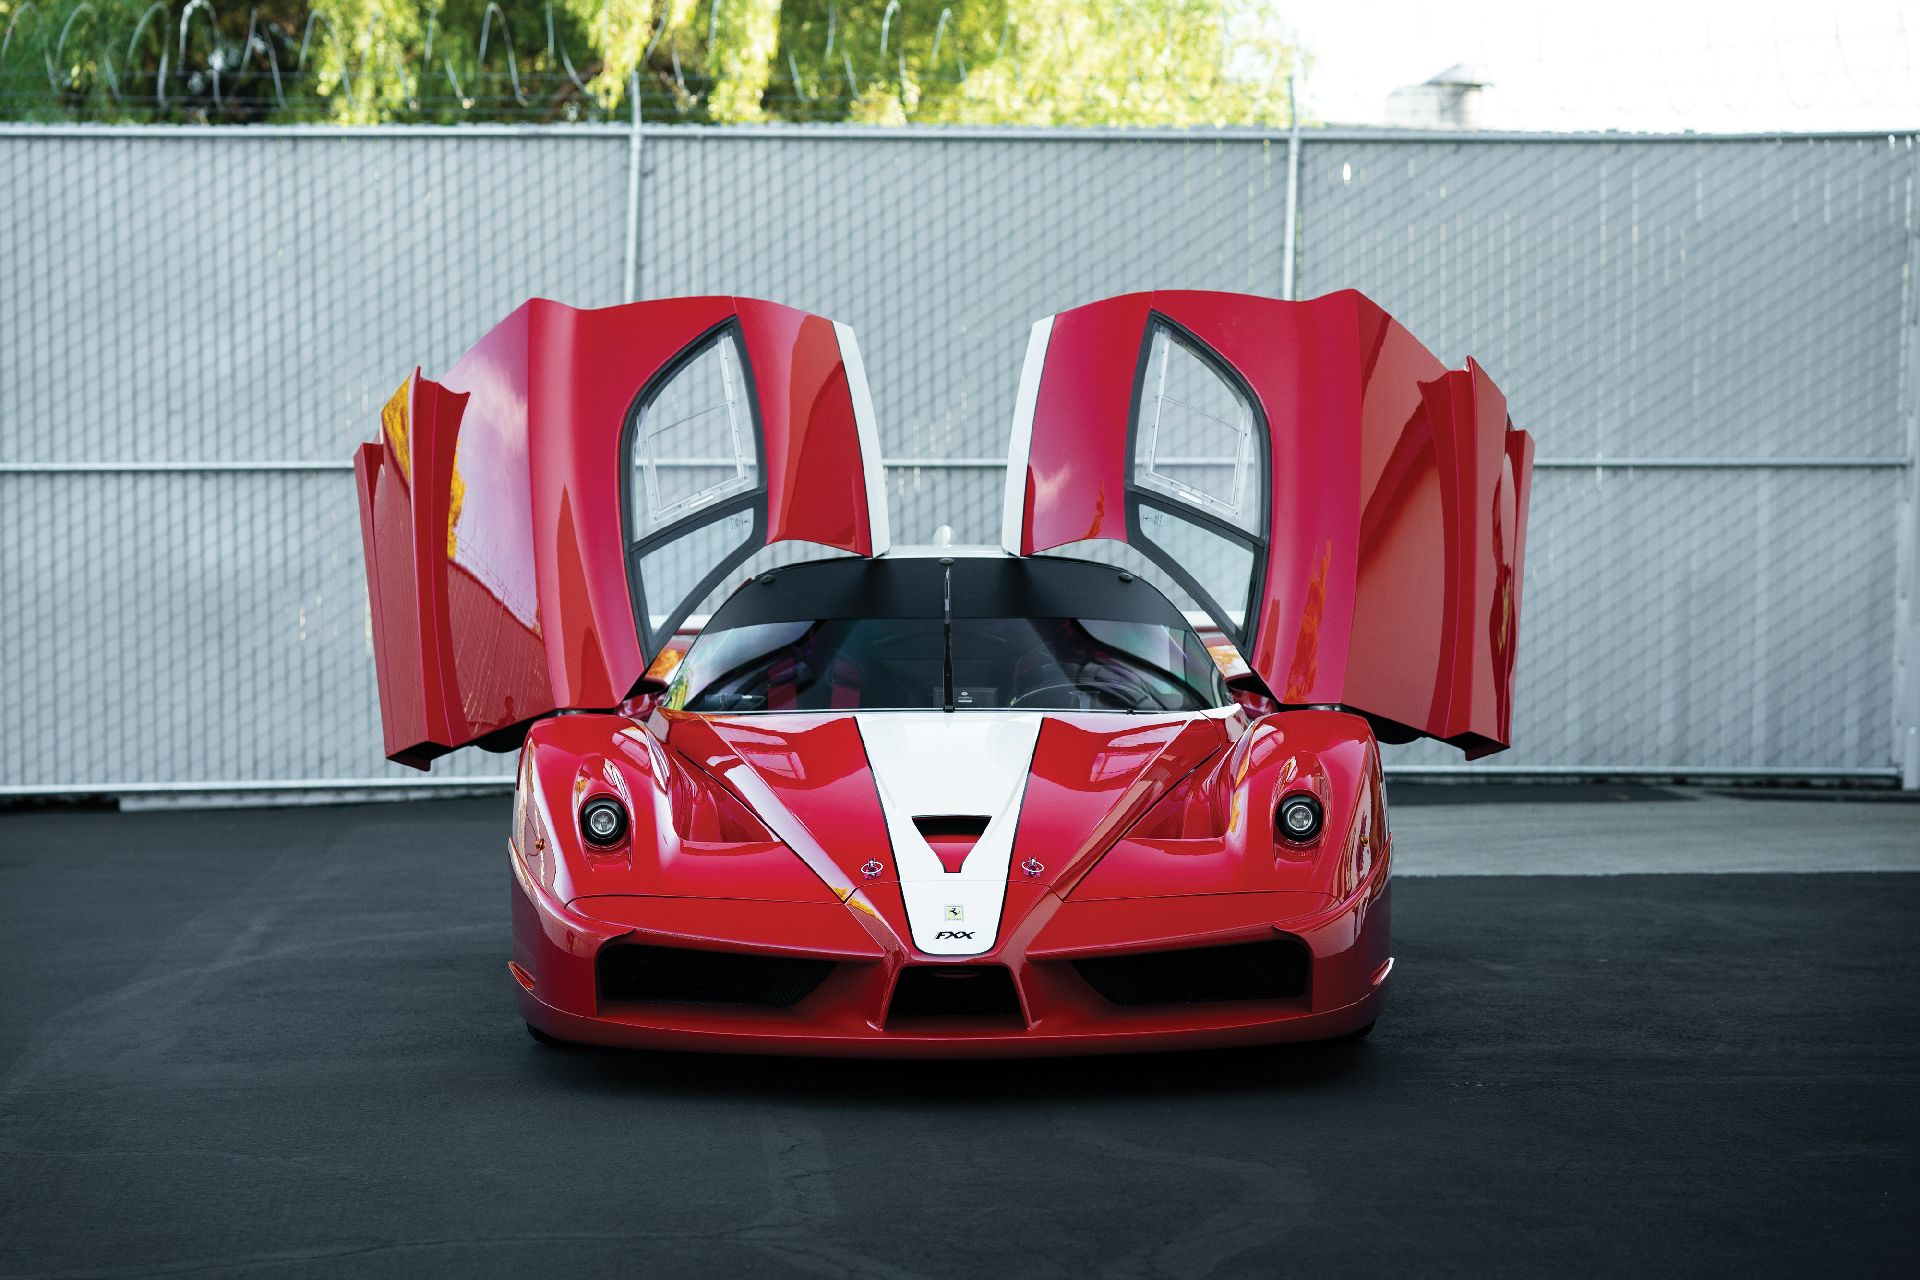 84e38fe7-ferrari-fxx-auction-7